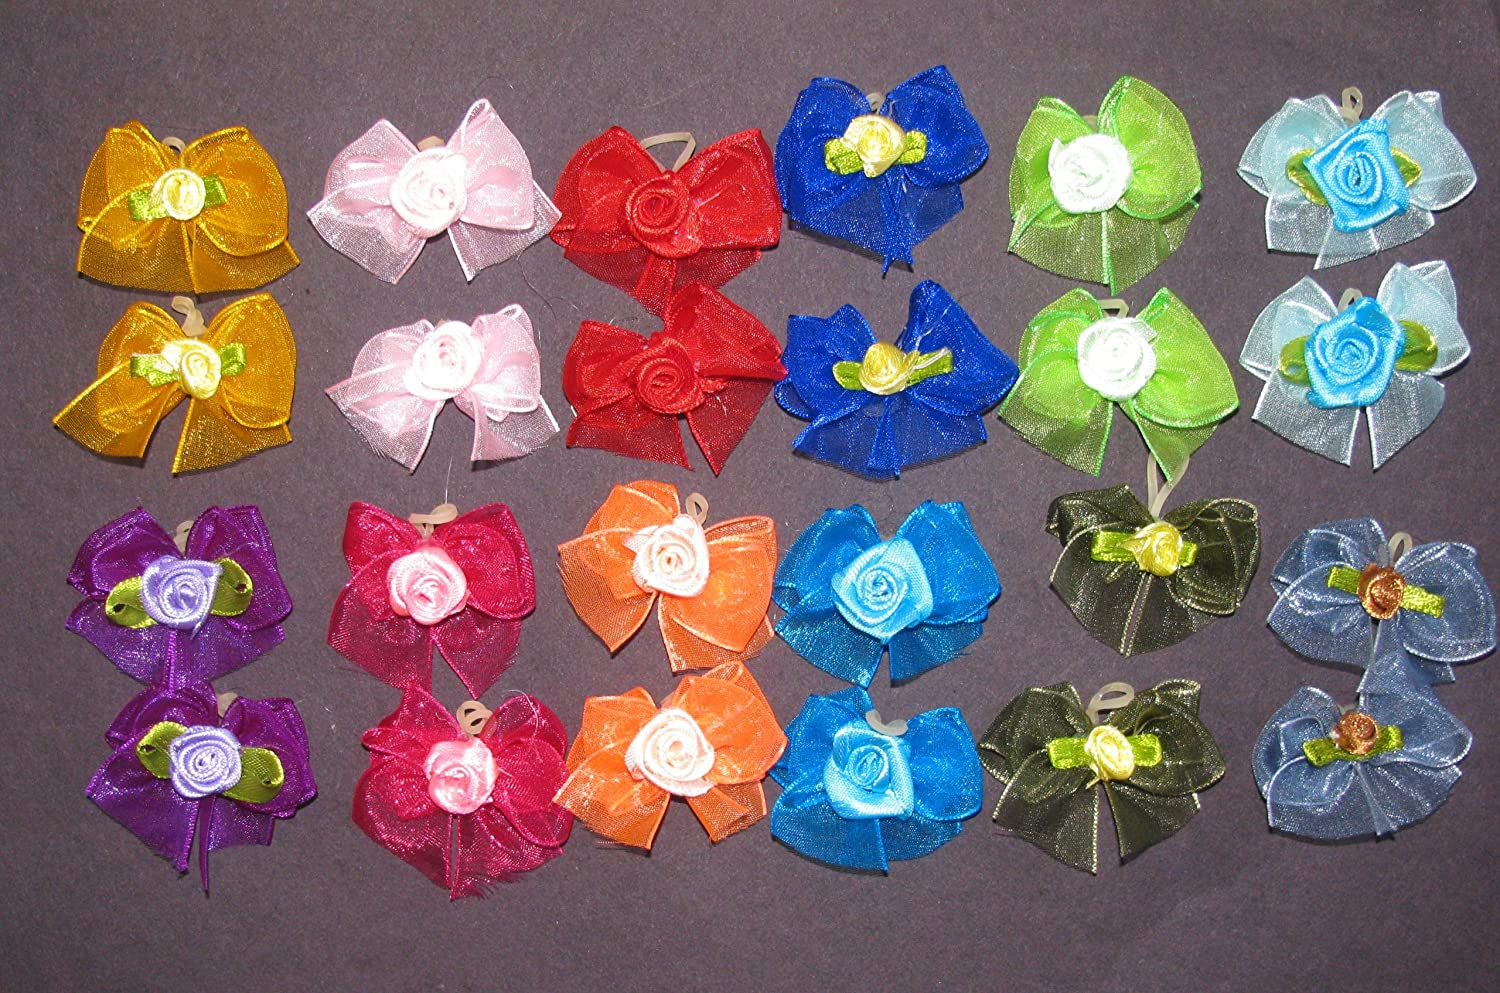 24 Dog Hair Bows  Double Layered with Center pink Decorations  12 Pairs of Different colors Handmade